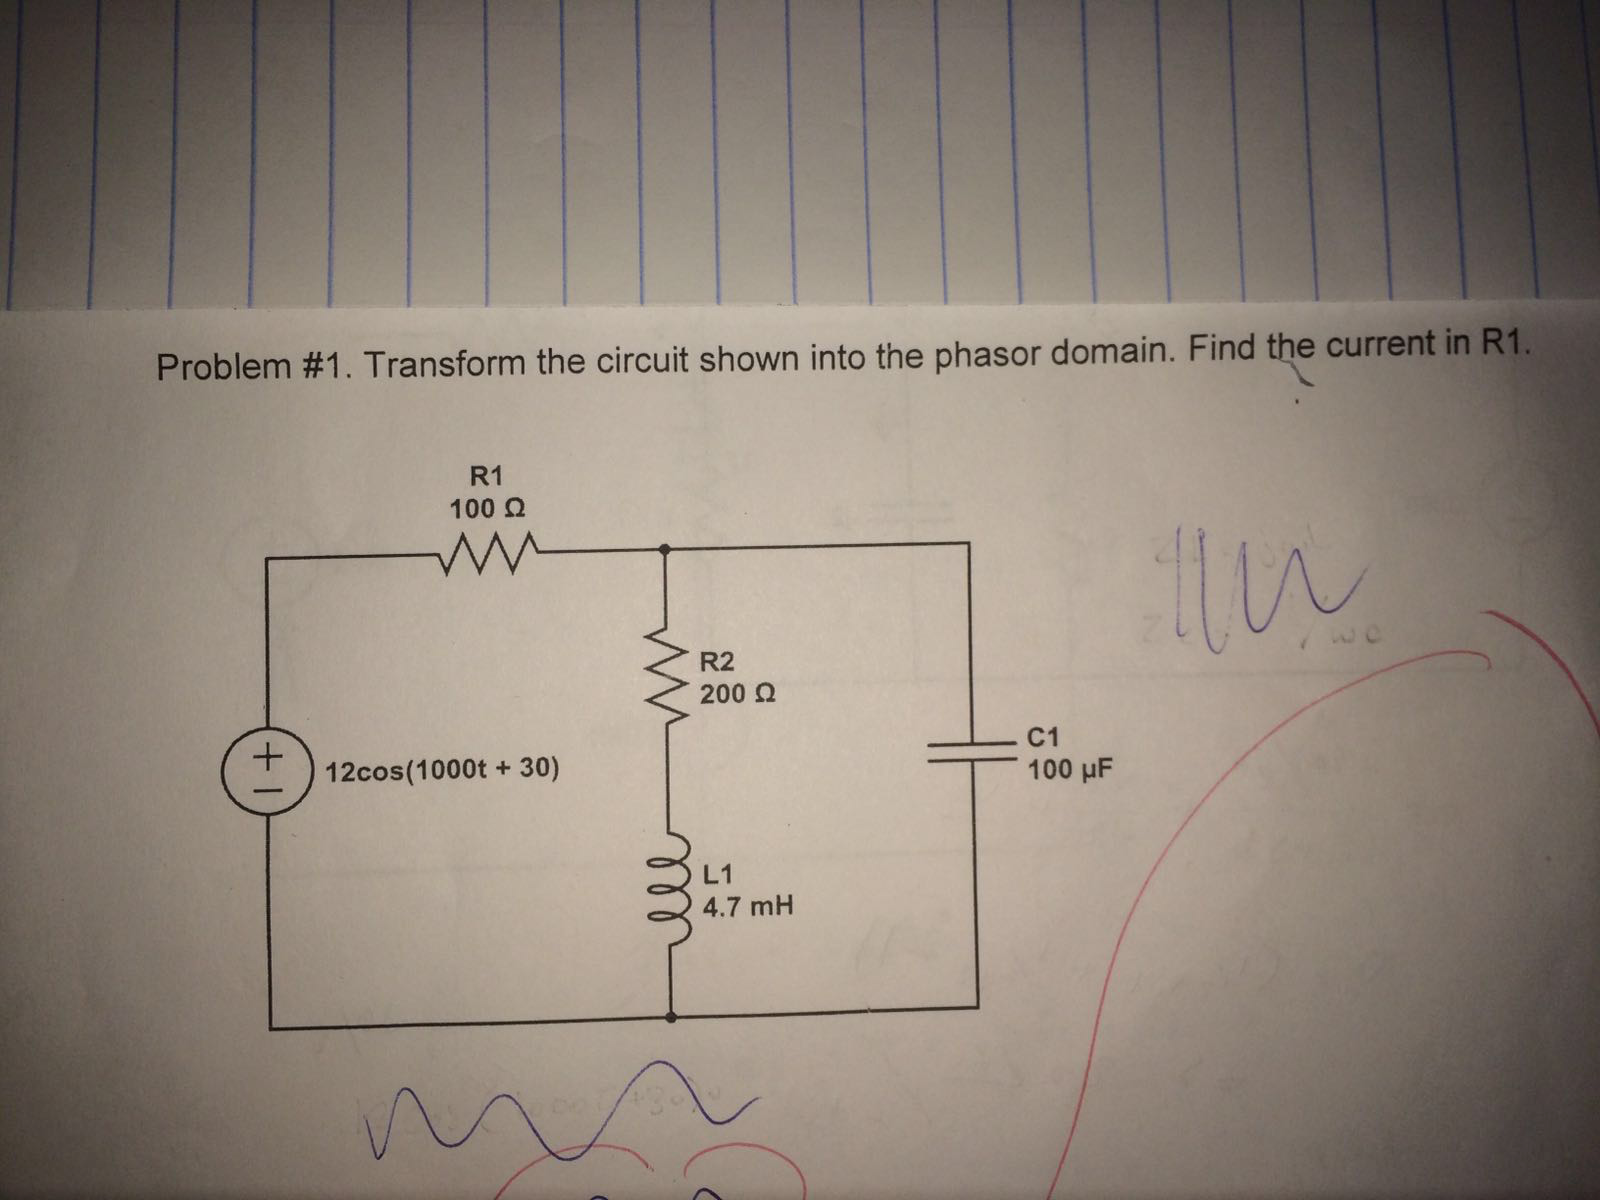 Transform the circuit shown into the phasor domain